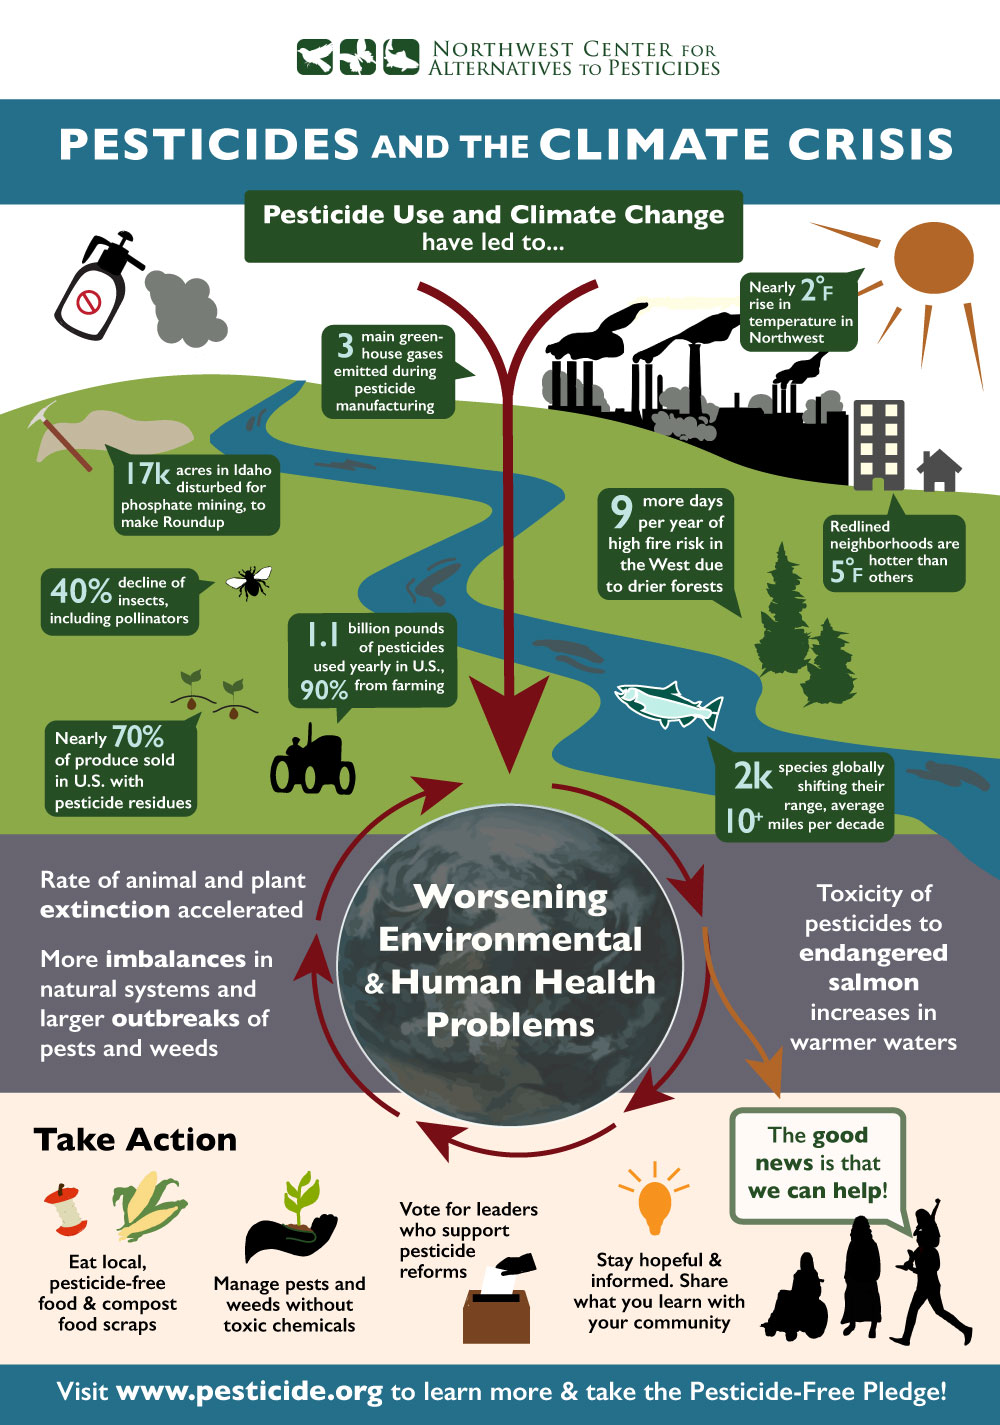 Infographic showing links between pesticides and the climate crisis